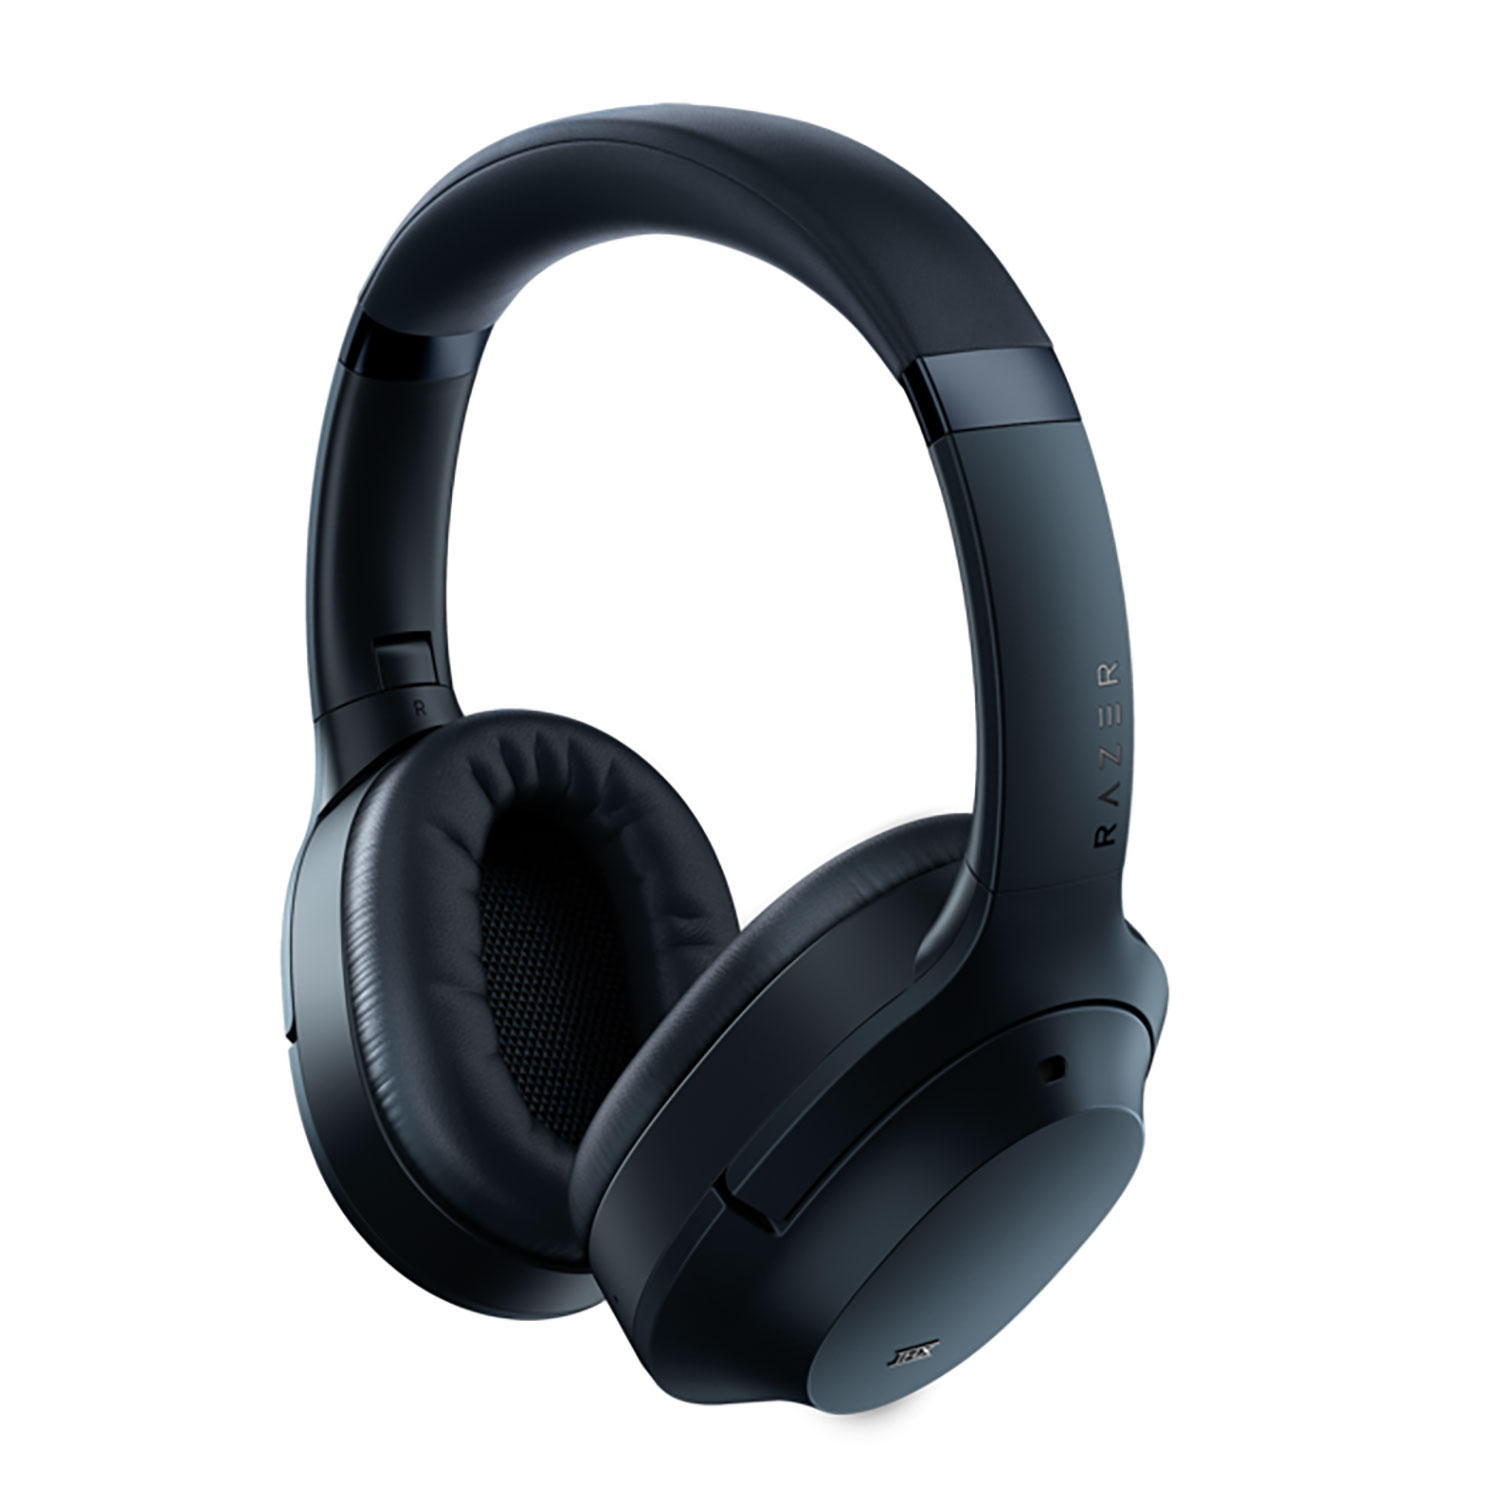 Razer Opus Active Noise Cancellation Headset